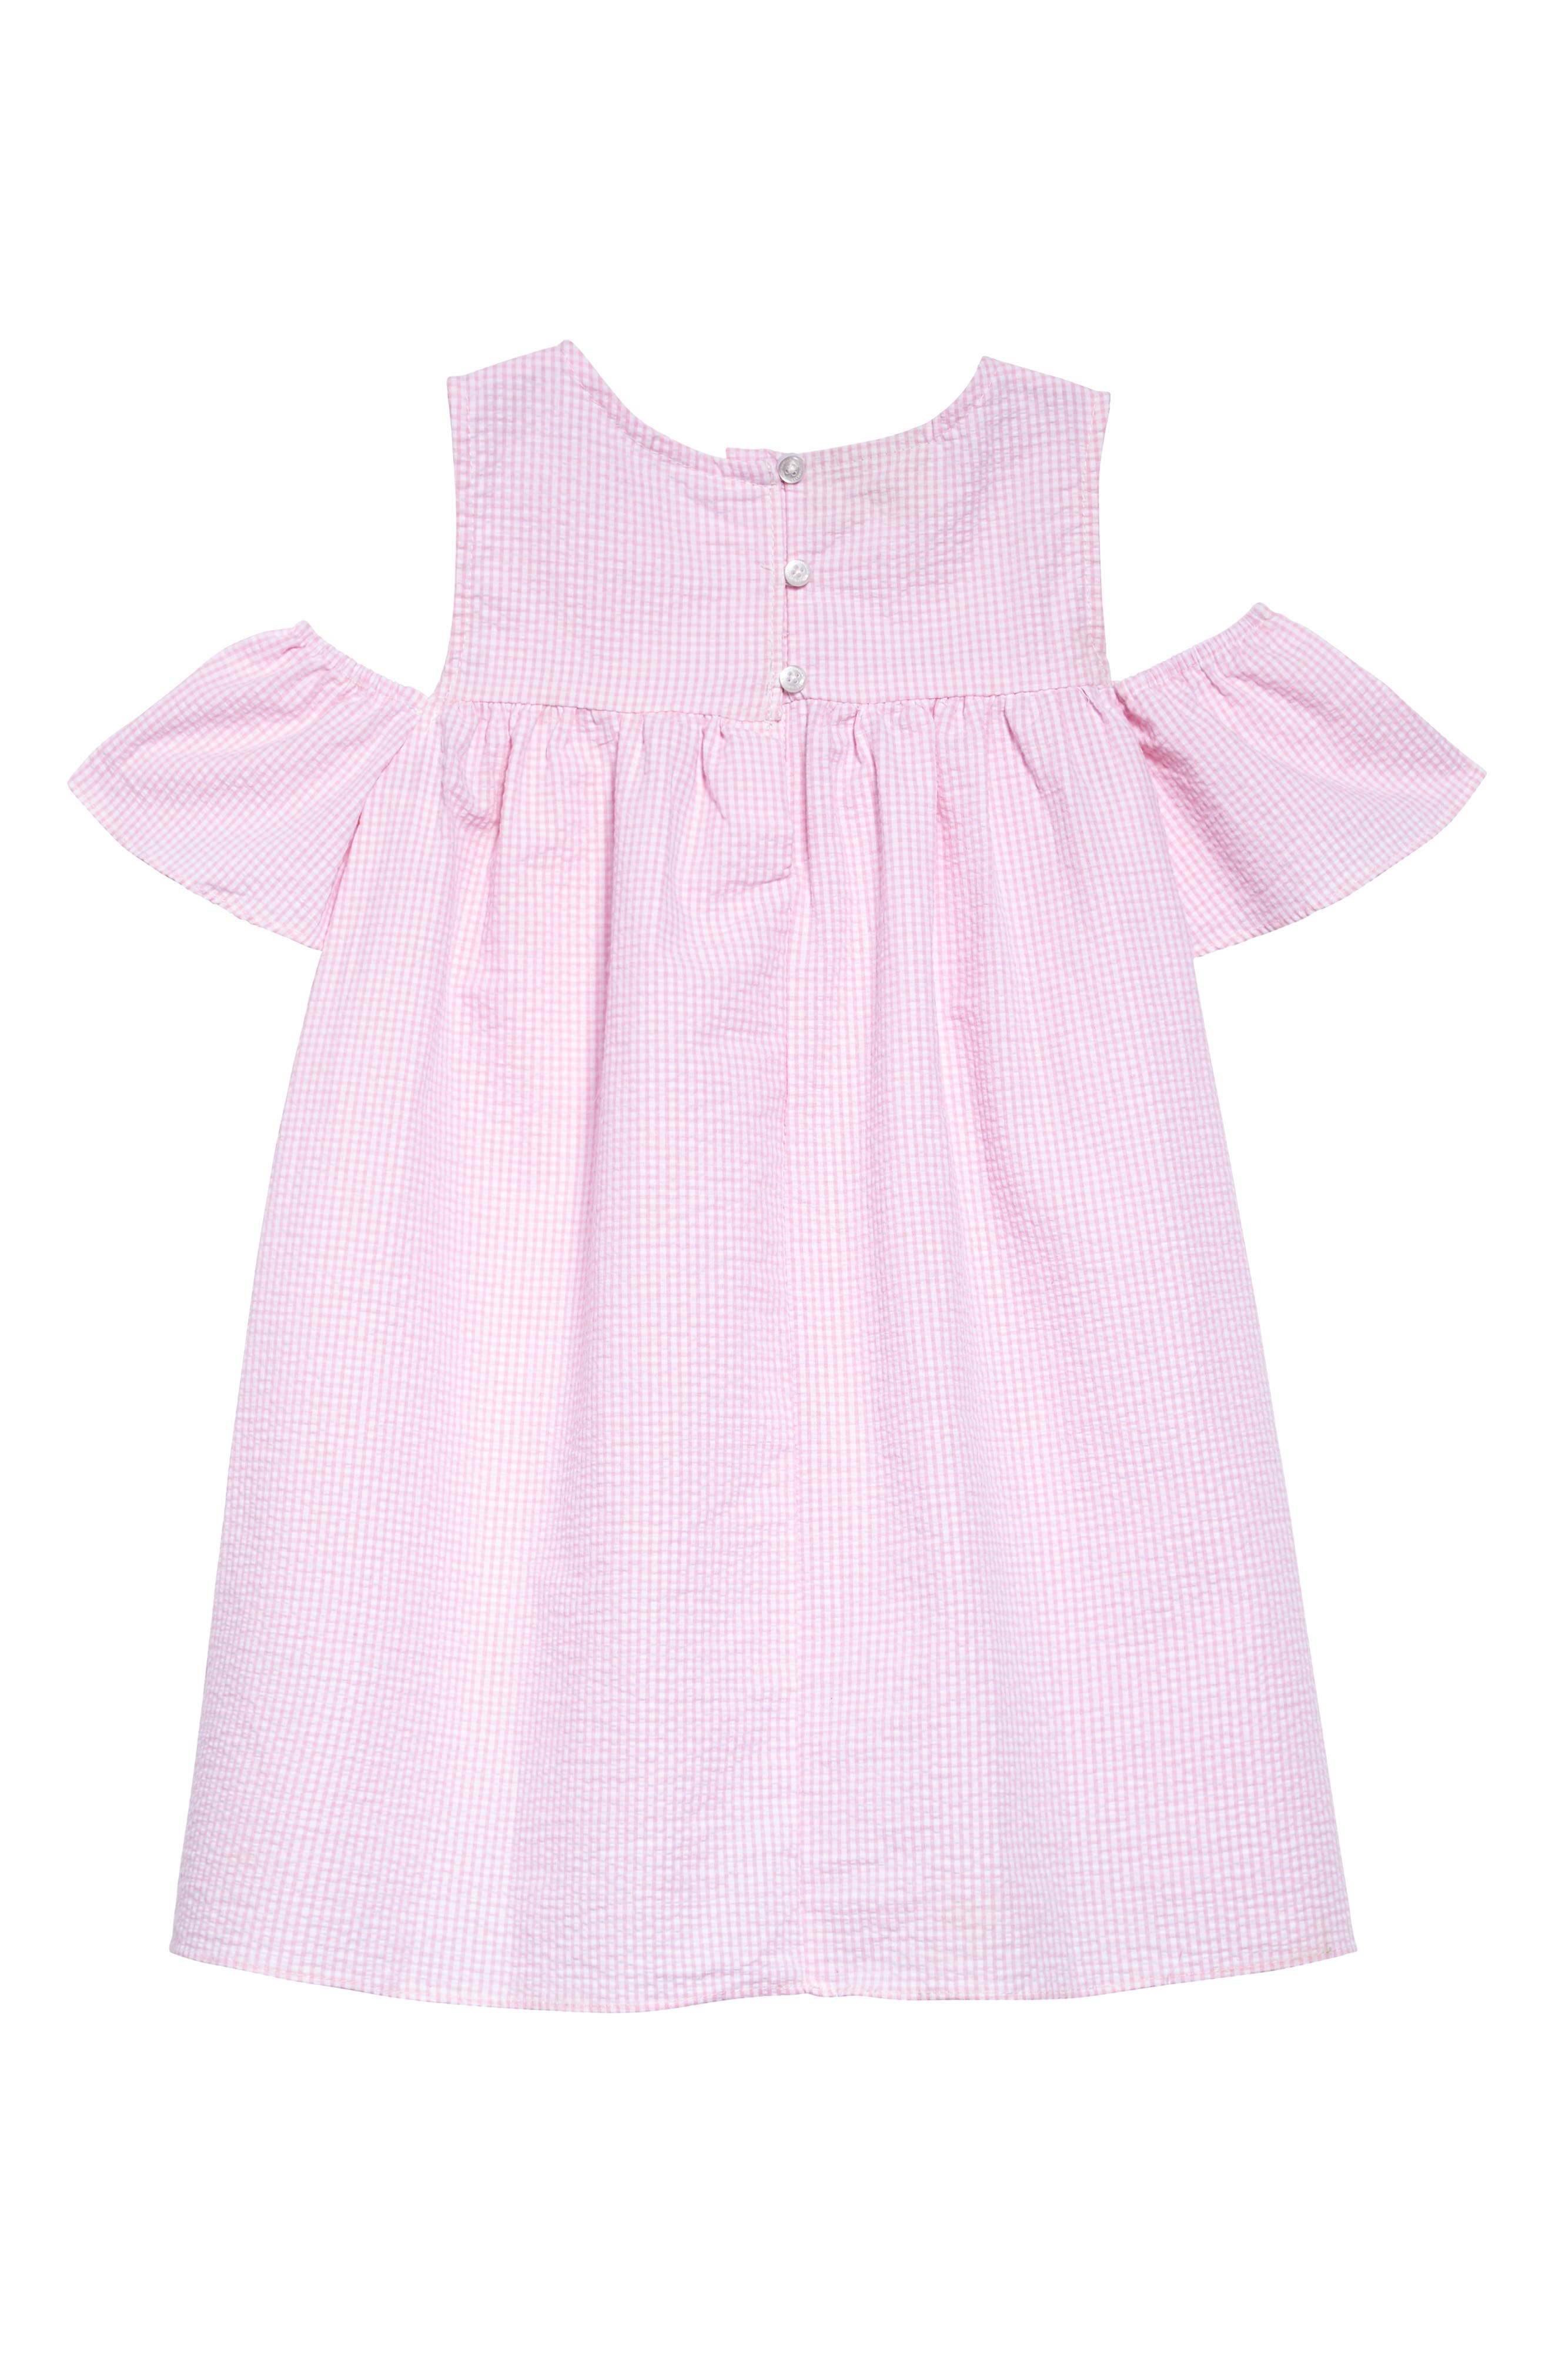 Cold Shoulder Dress,                             Alternate thumbnail 2, color,                             Pink White